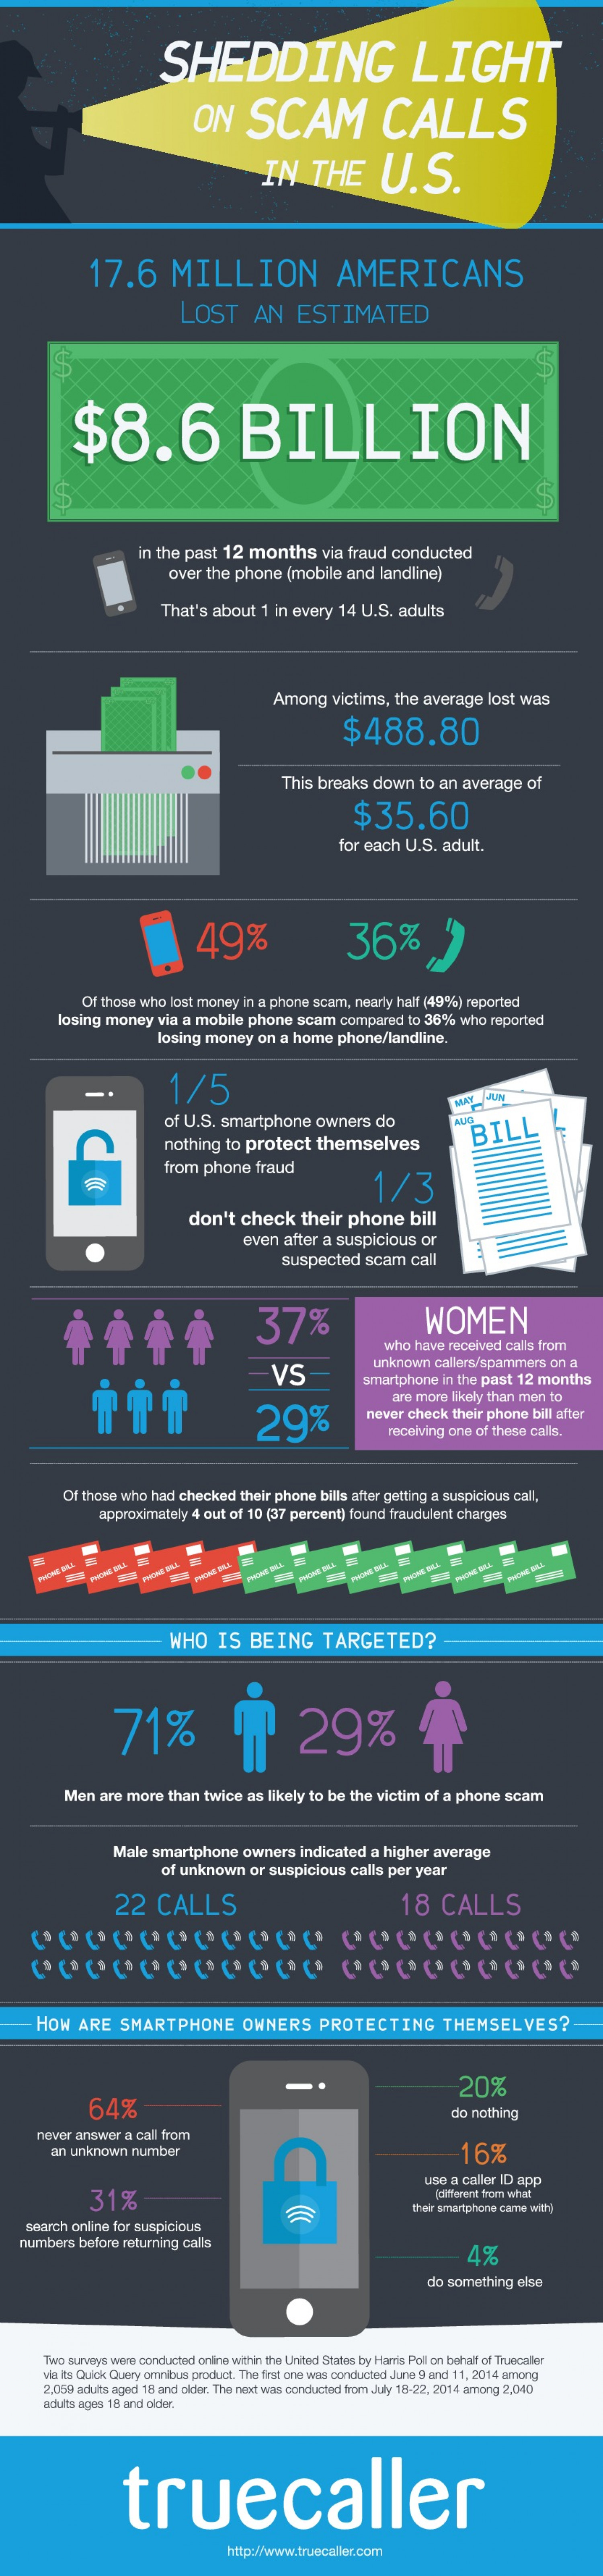 Shedding Light on Scam Calls in the U.S. Infographic